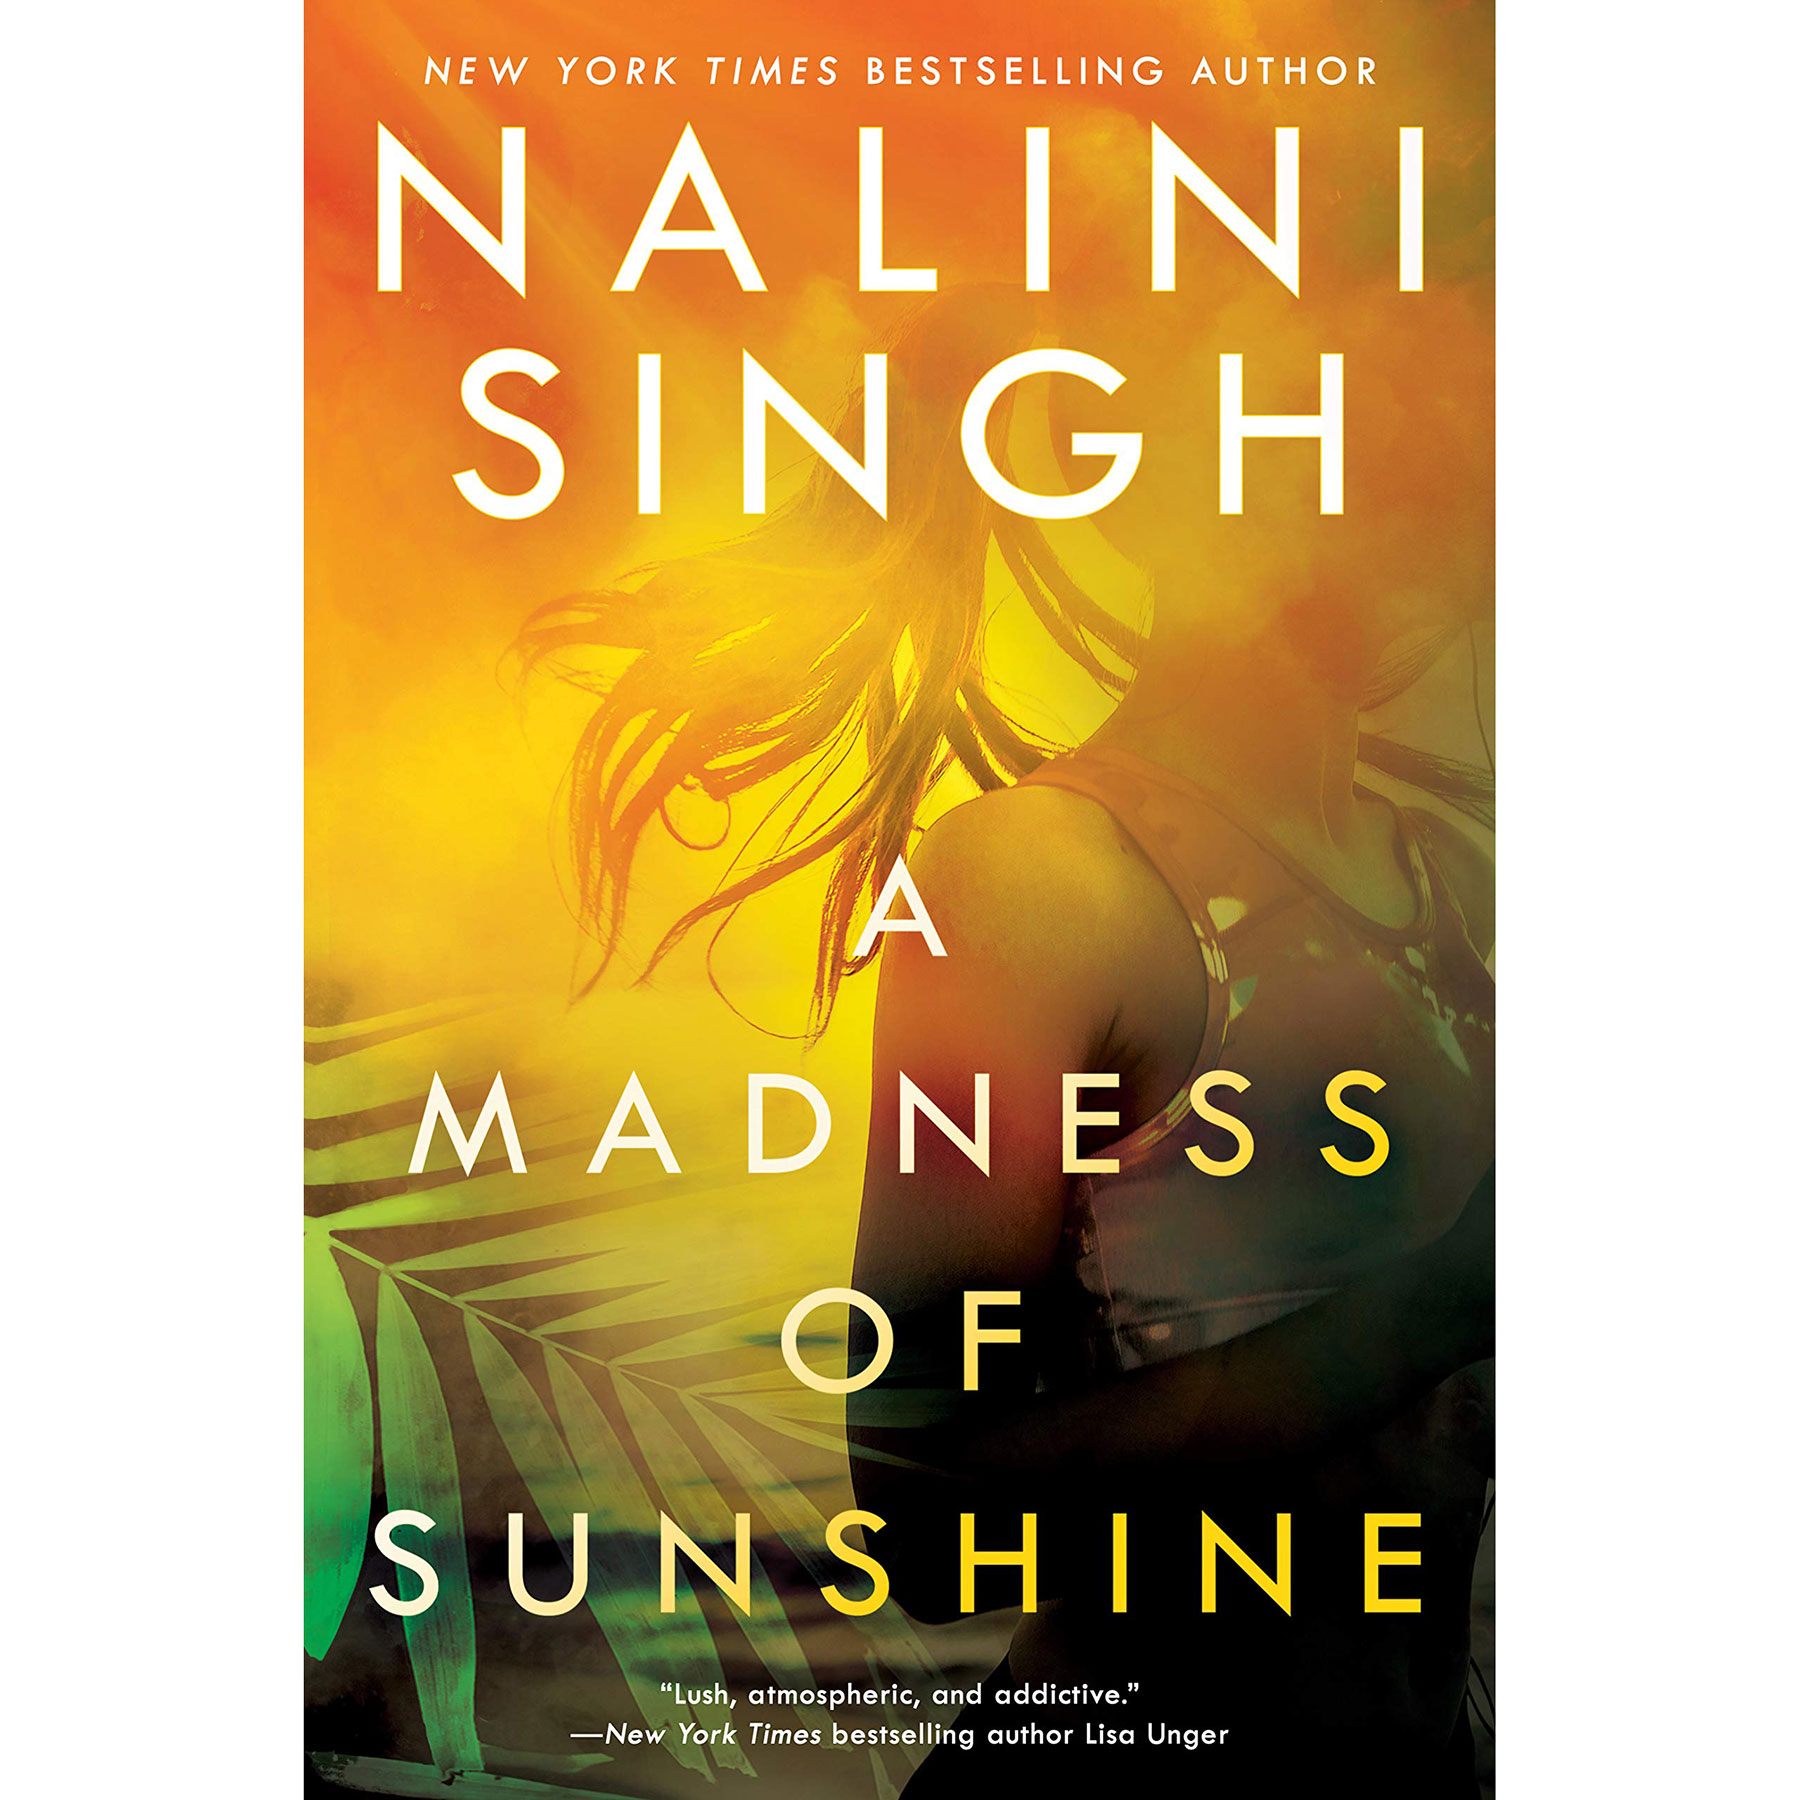 Cover of A Madness of Sunshine, by Nalini Singh